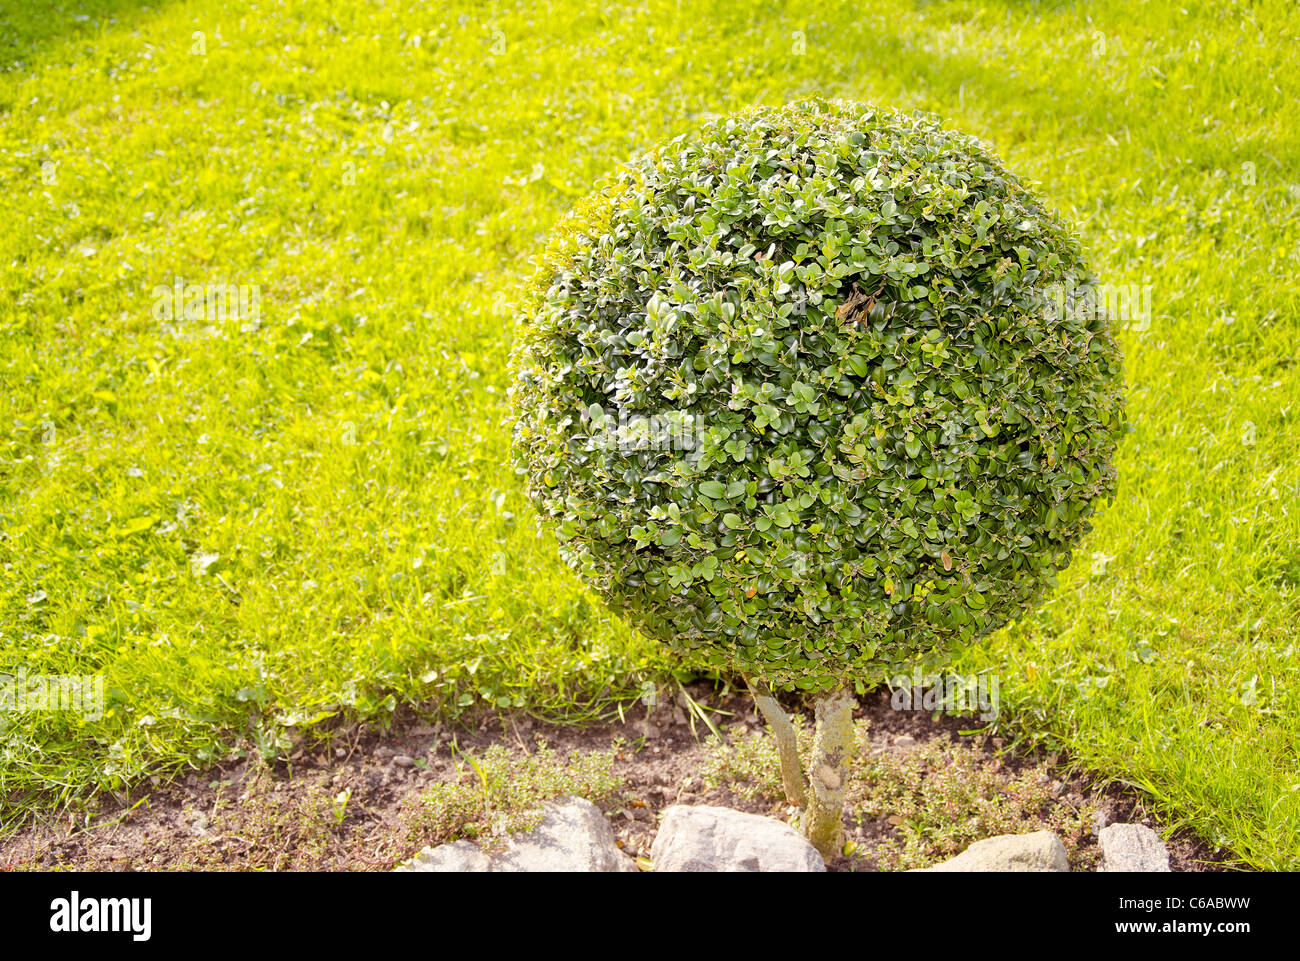 ball form tree in the garden ant grass background Stock Photo